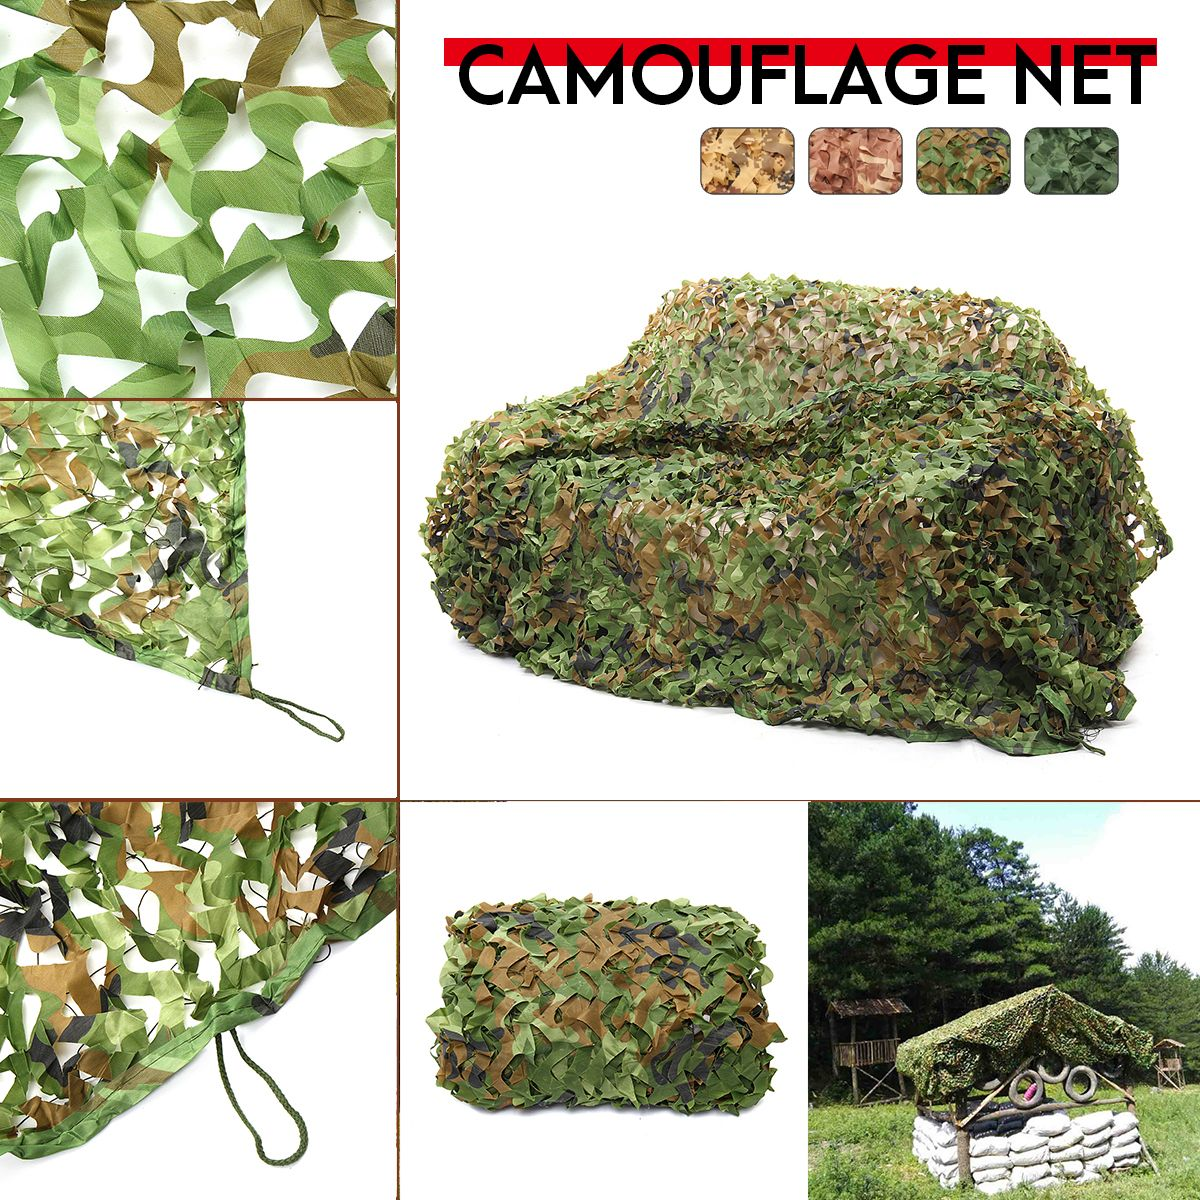 1.5x6m//2x5m/2x6m Camping Camo Net Army Woodland Jungle Camouflage Nets Hunting Shooting Shelter Hide Netting Sun Shelter